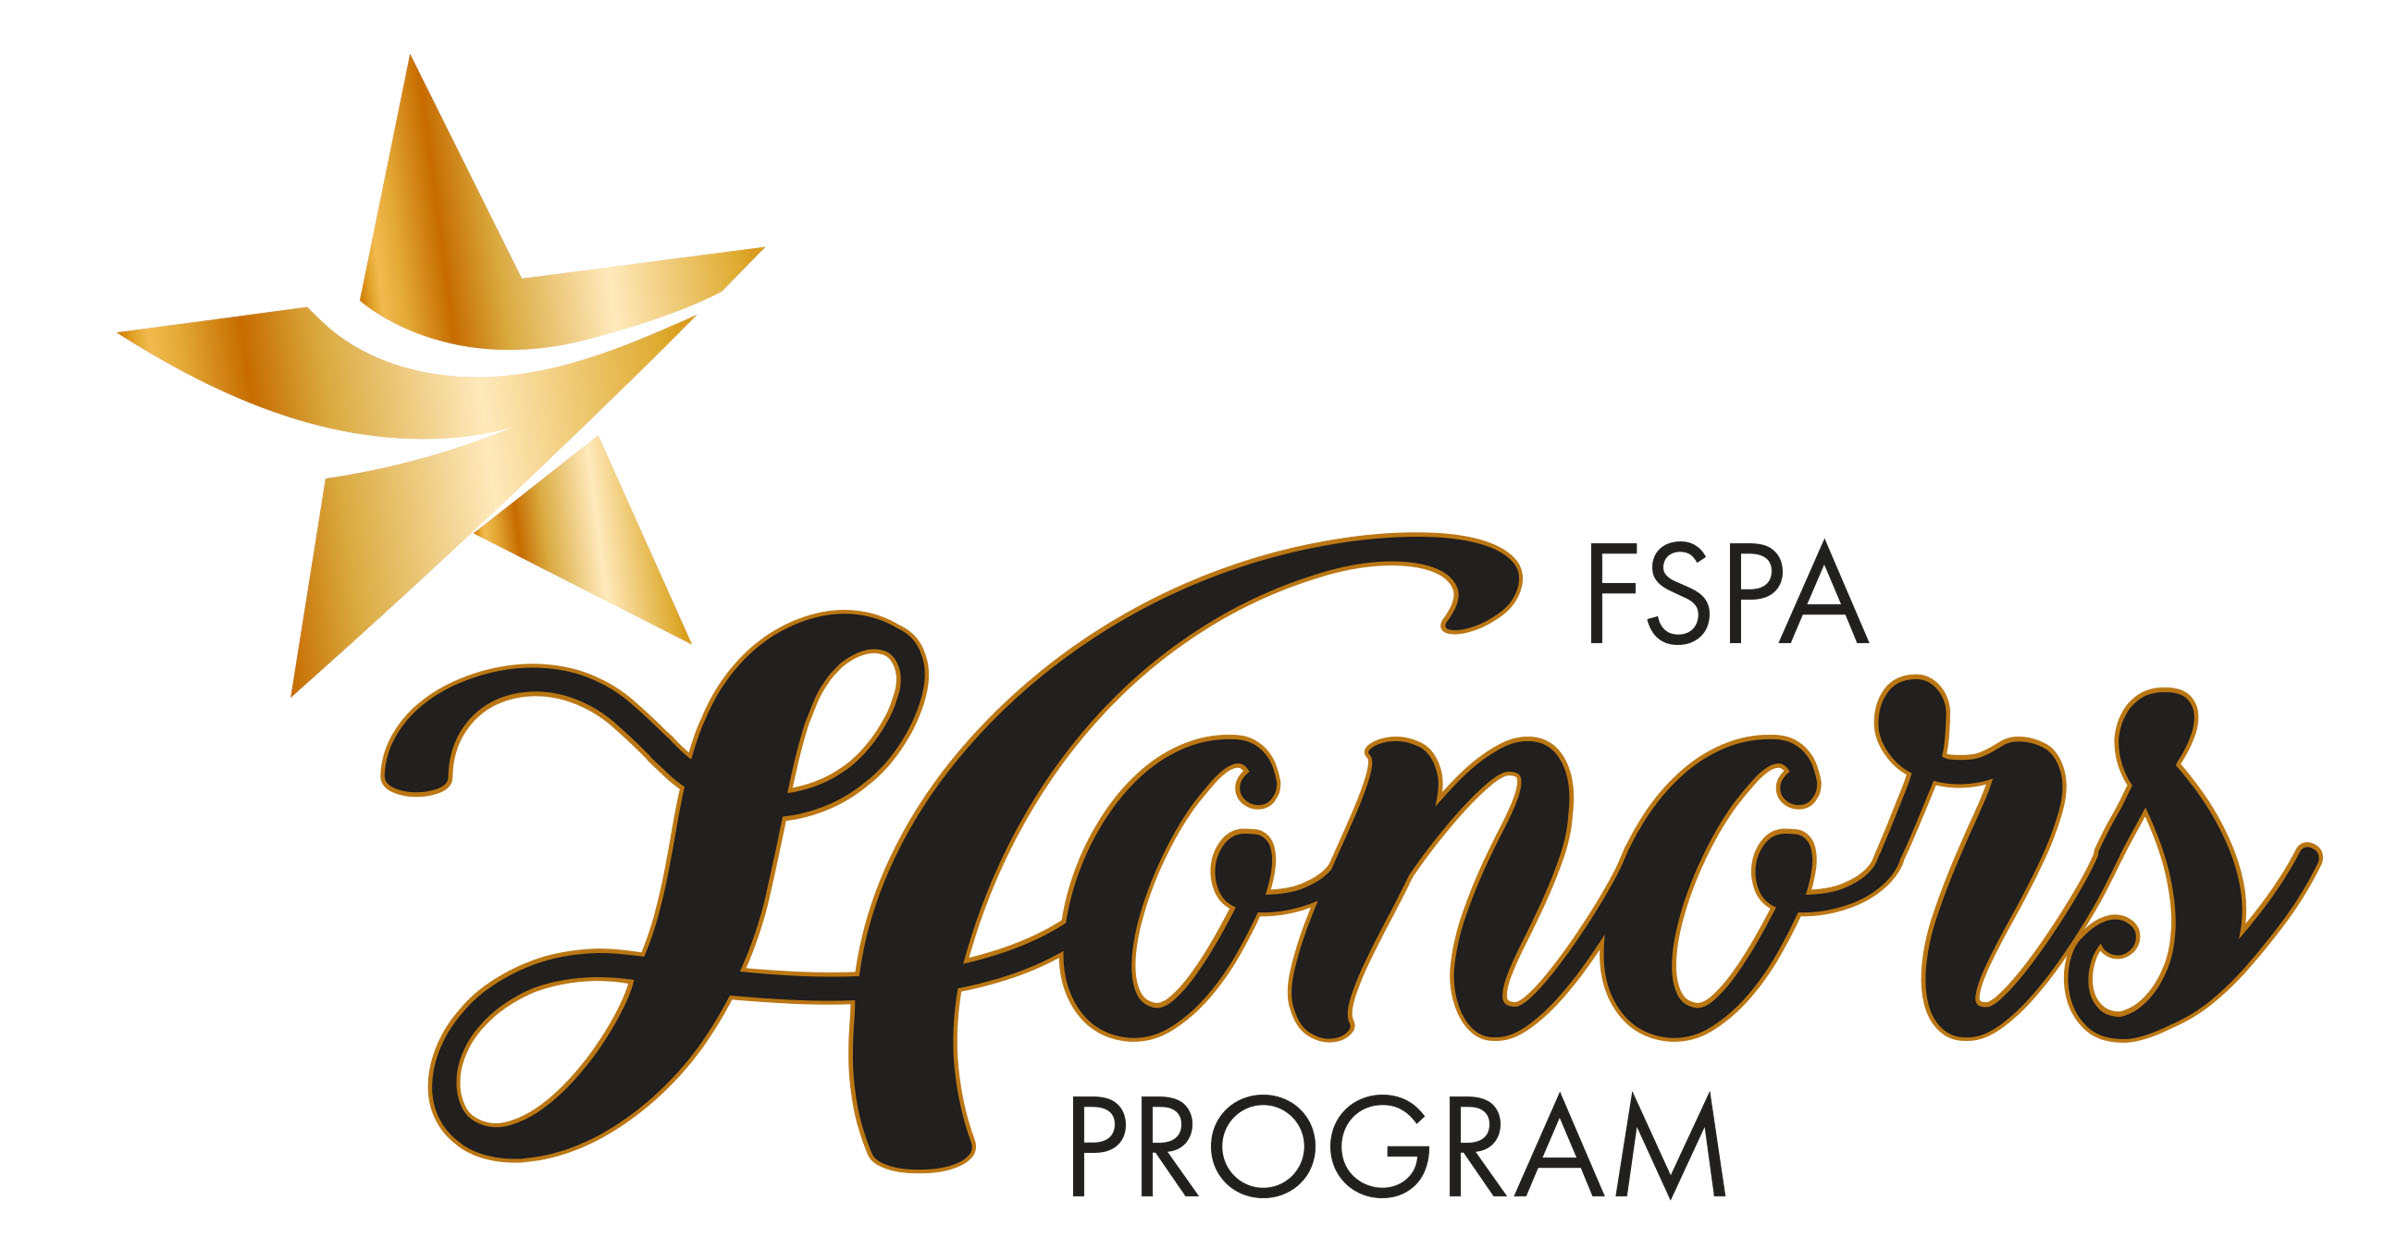 Flint School of Performing Arts Honors Program